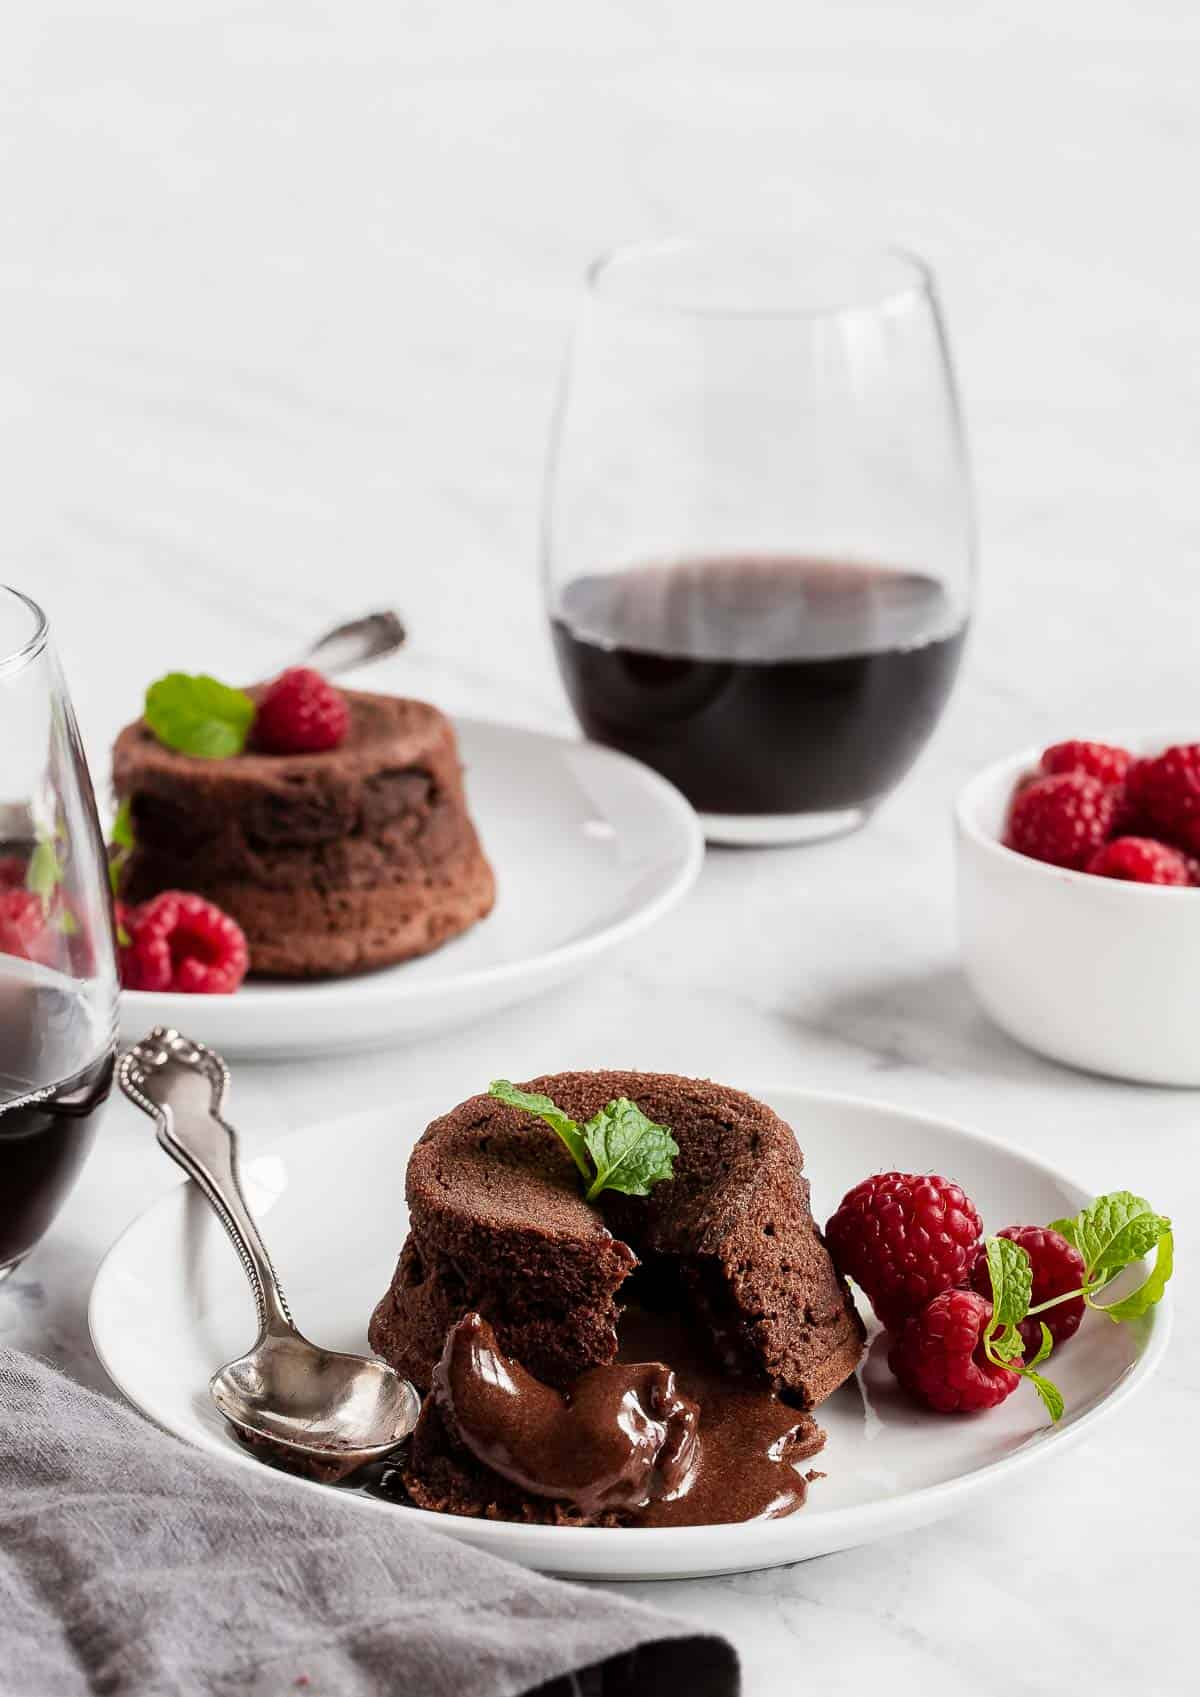 Two molten chocolate cakes on plate with berries and a glass of red wine.